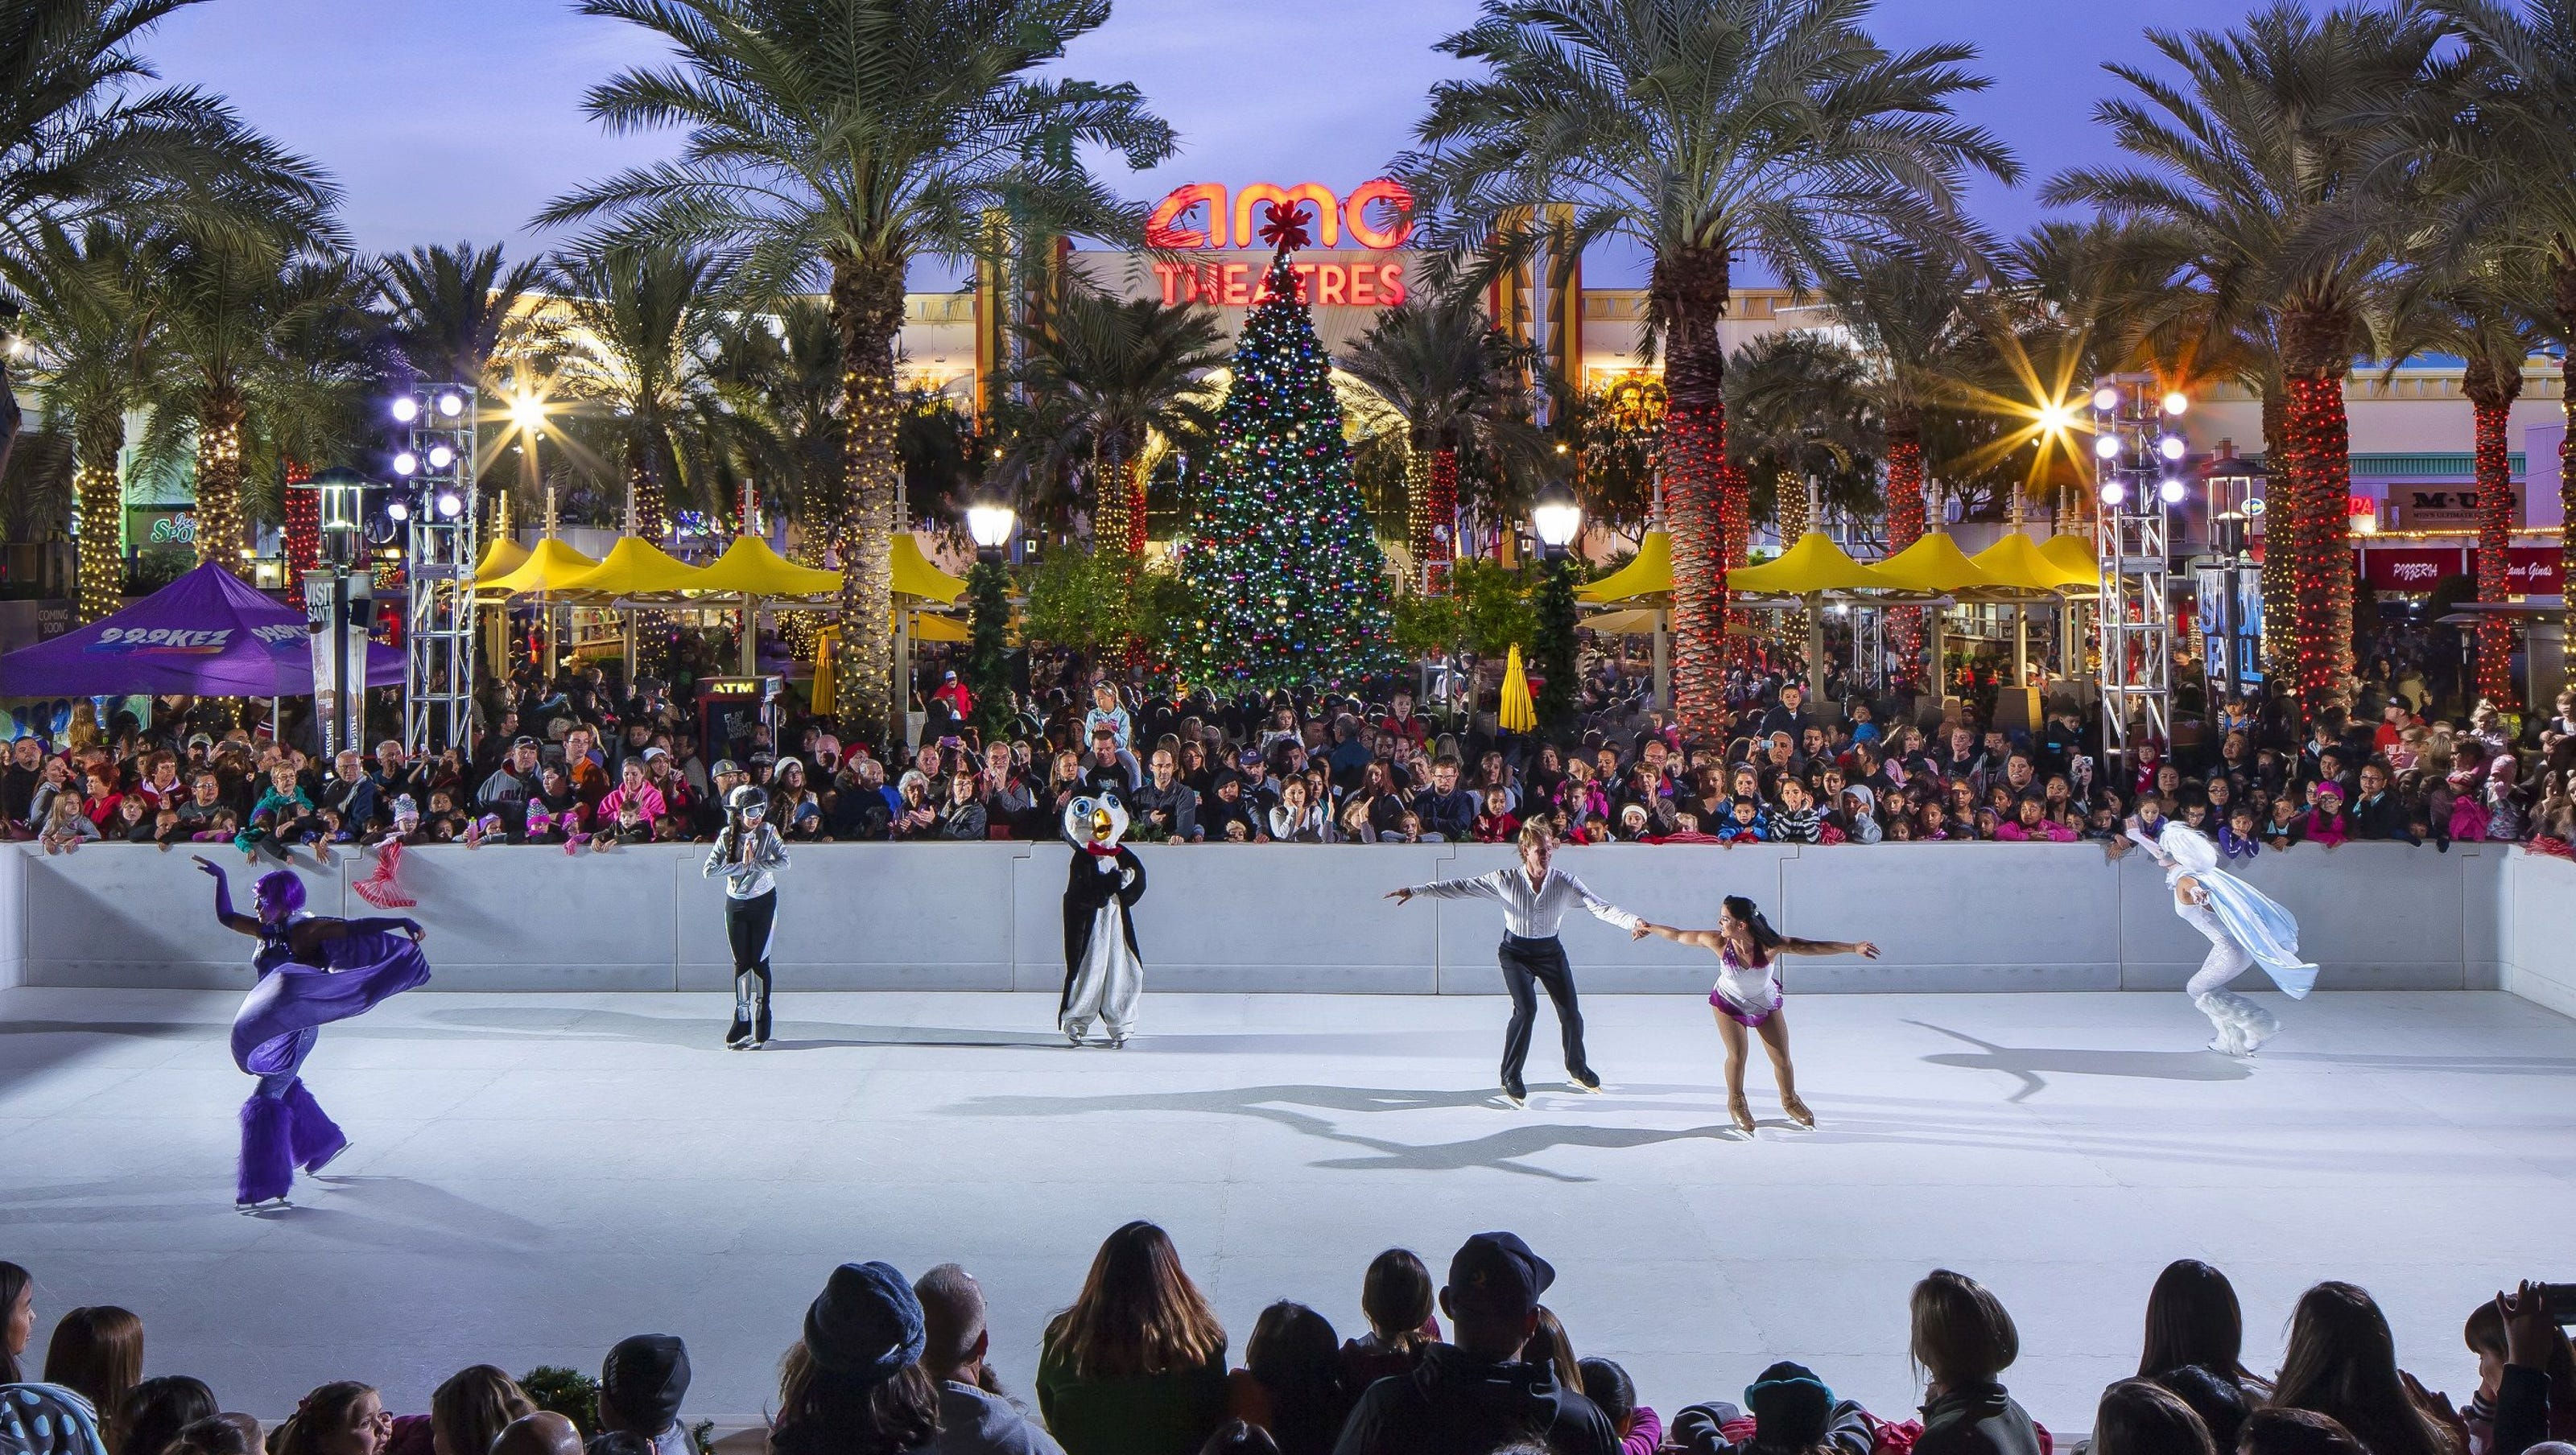 How To Make An Ice Skating Rink In Your Backyard outdoor ice skating rinks around phoenix